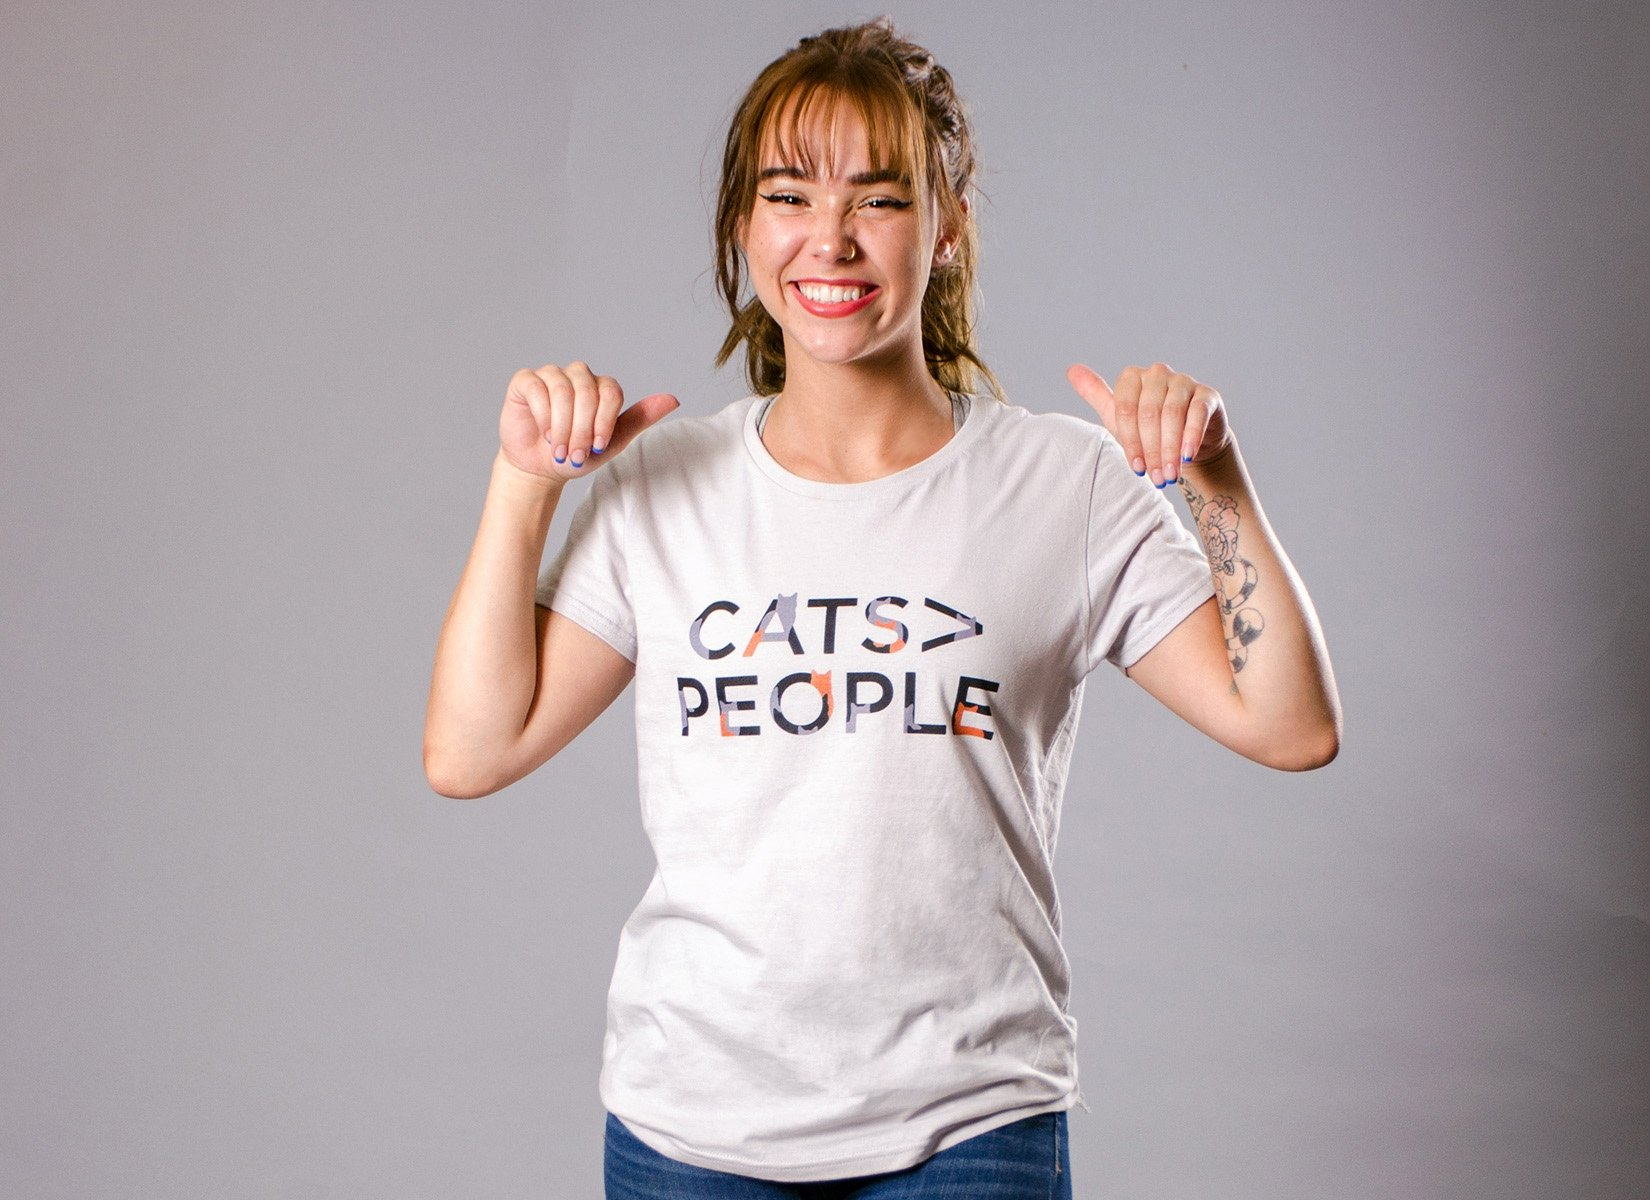 Cats>People on Womens T-Shirt